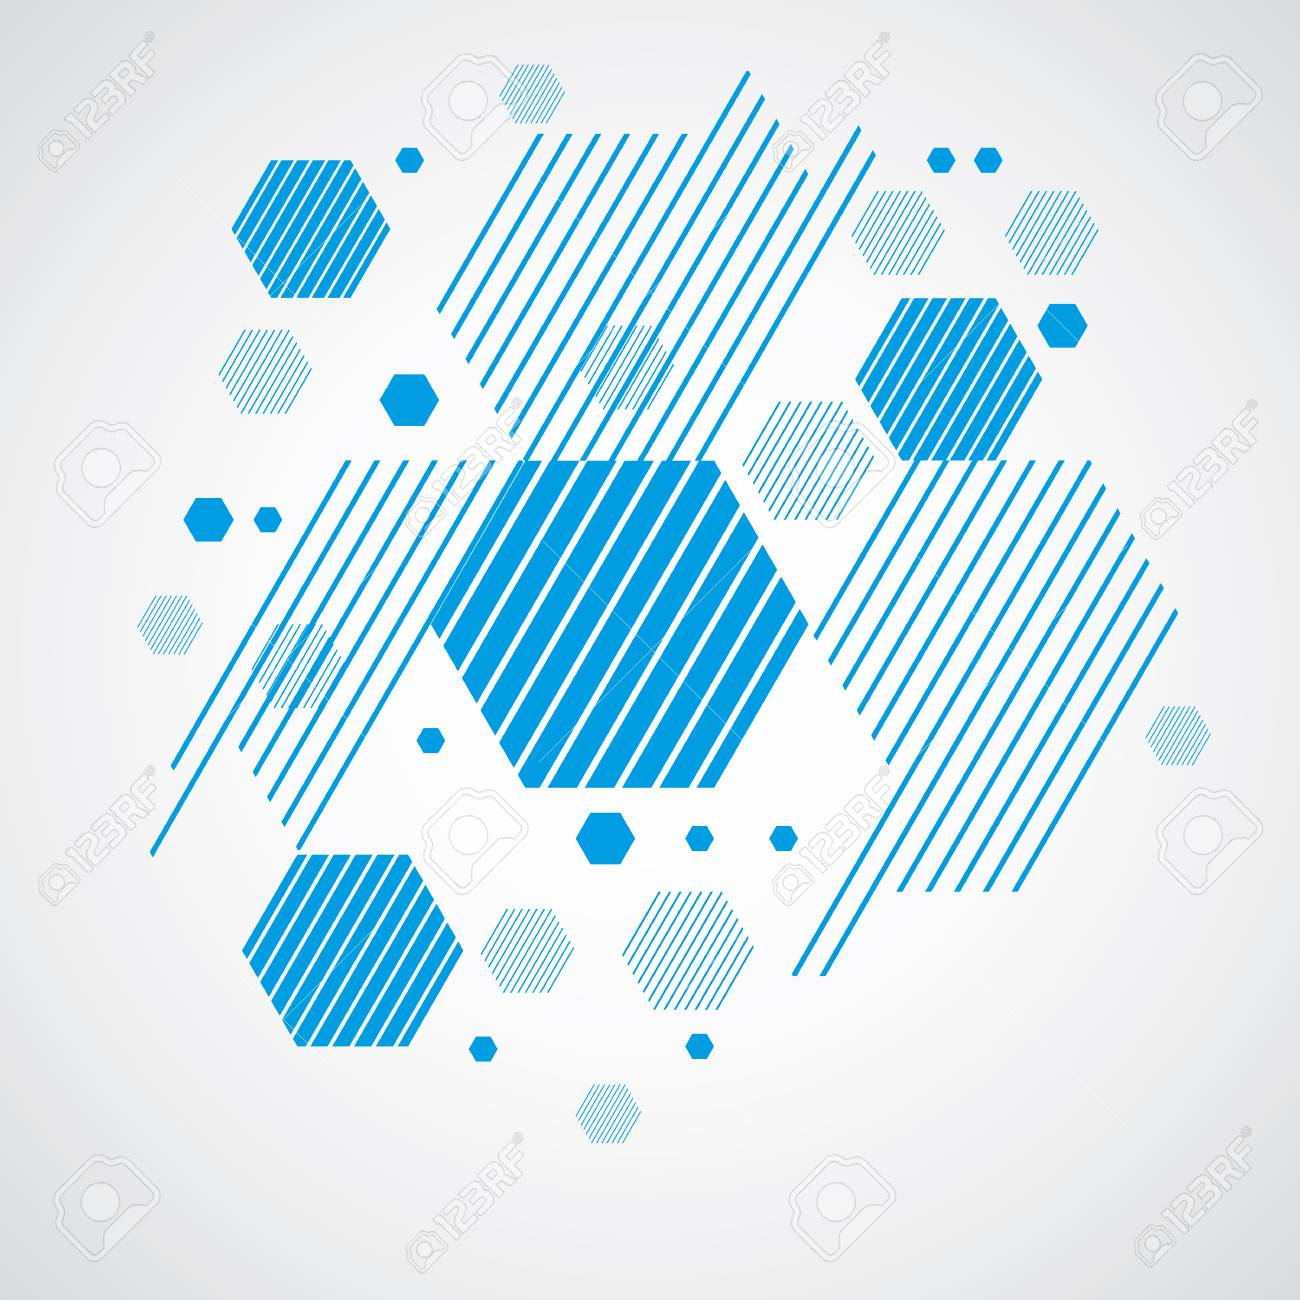 vector bauhaus abstract background made with grid and overlapping